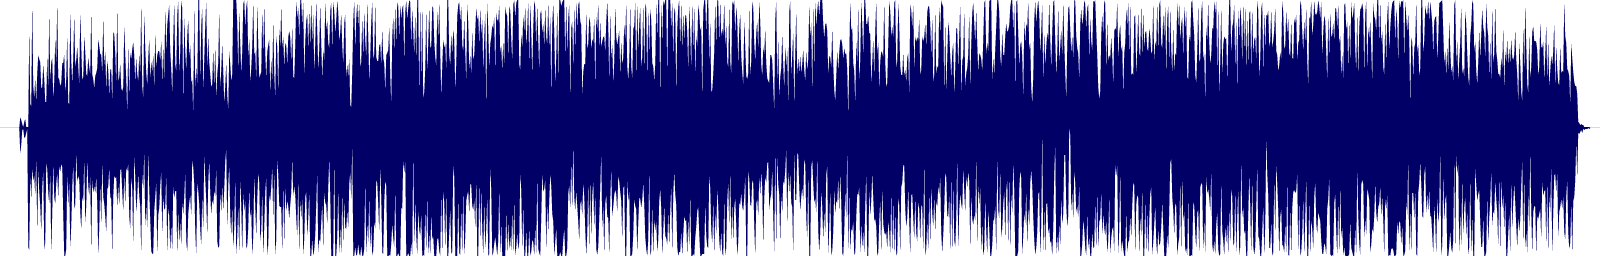 waveform of track #136242